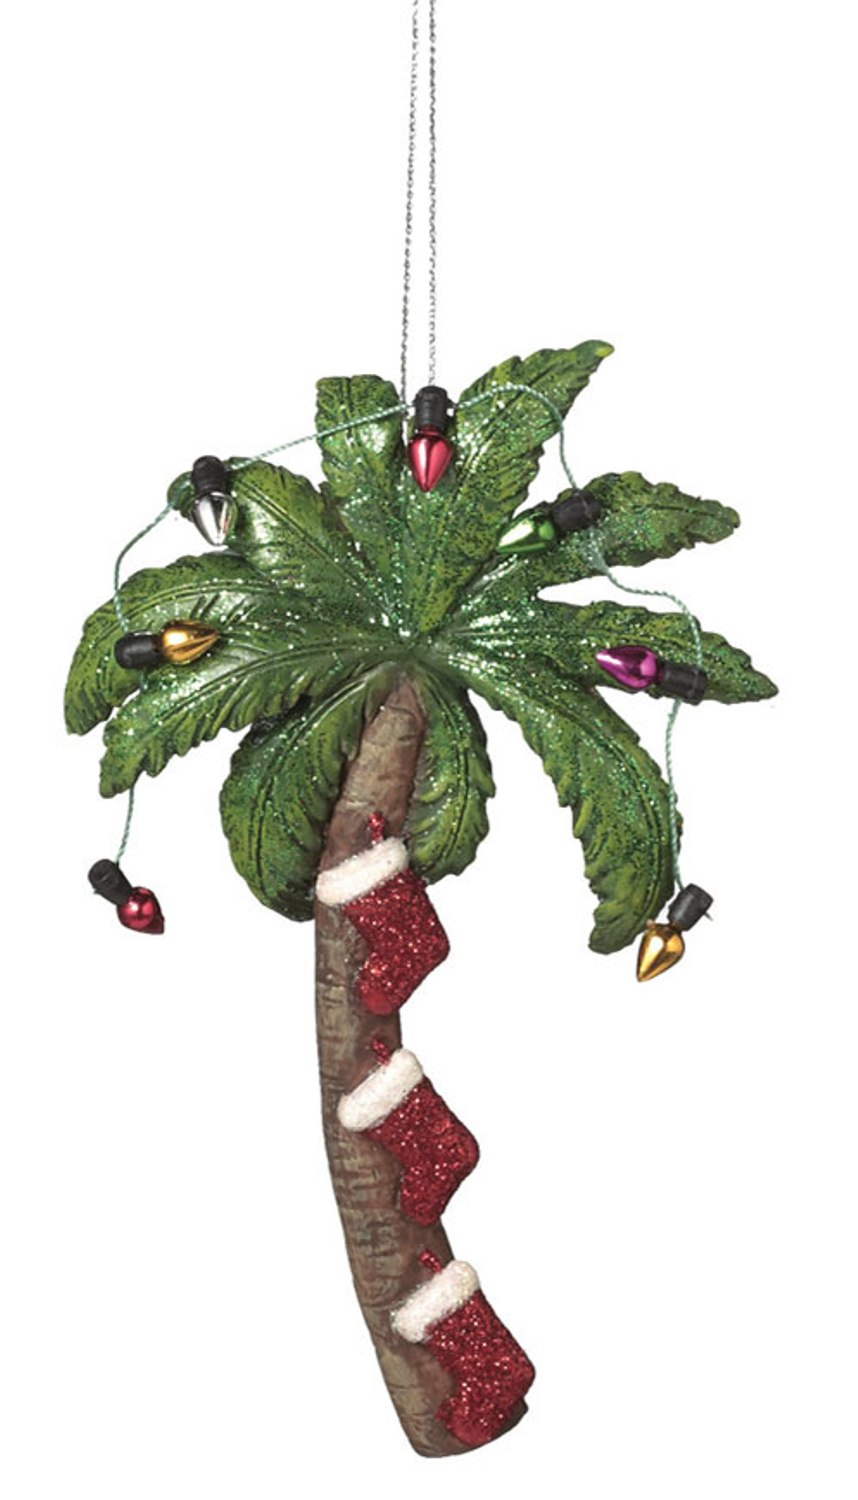 Stockings Hanging Under Palm Tree Decorated For Christmas Holiday